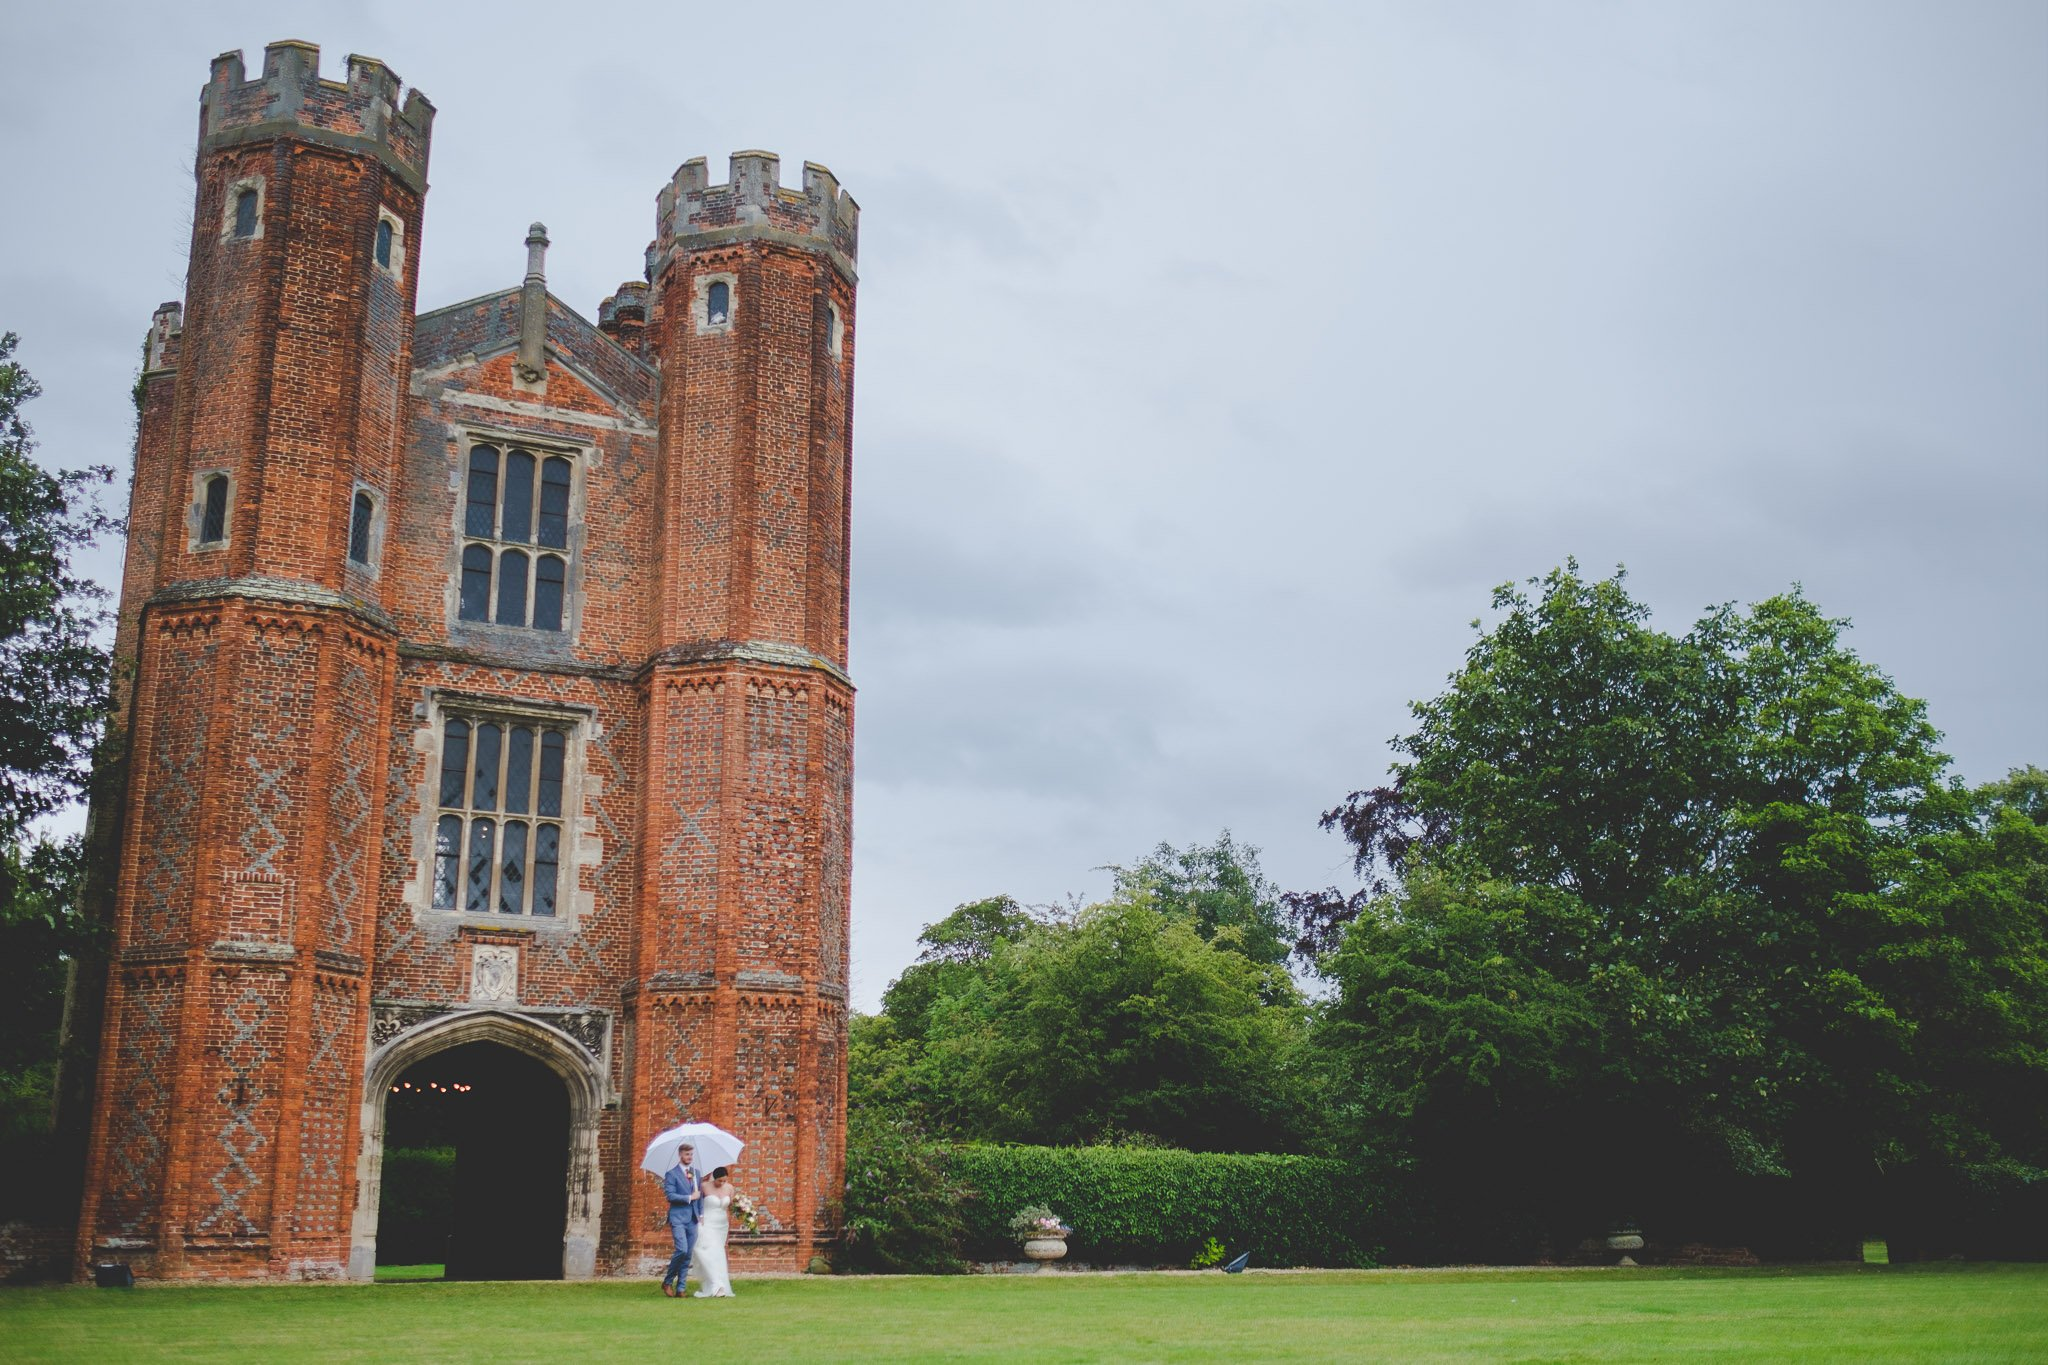 Portrait of a just married couple walking away from the Great Tower at Leez Priory. Photography by thatthingyoupluck.